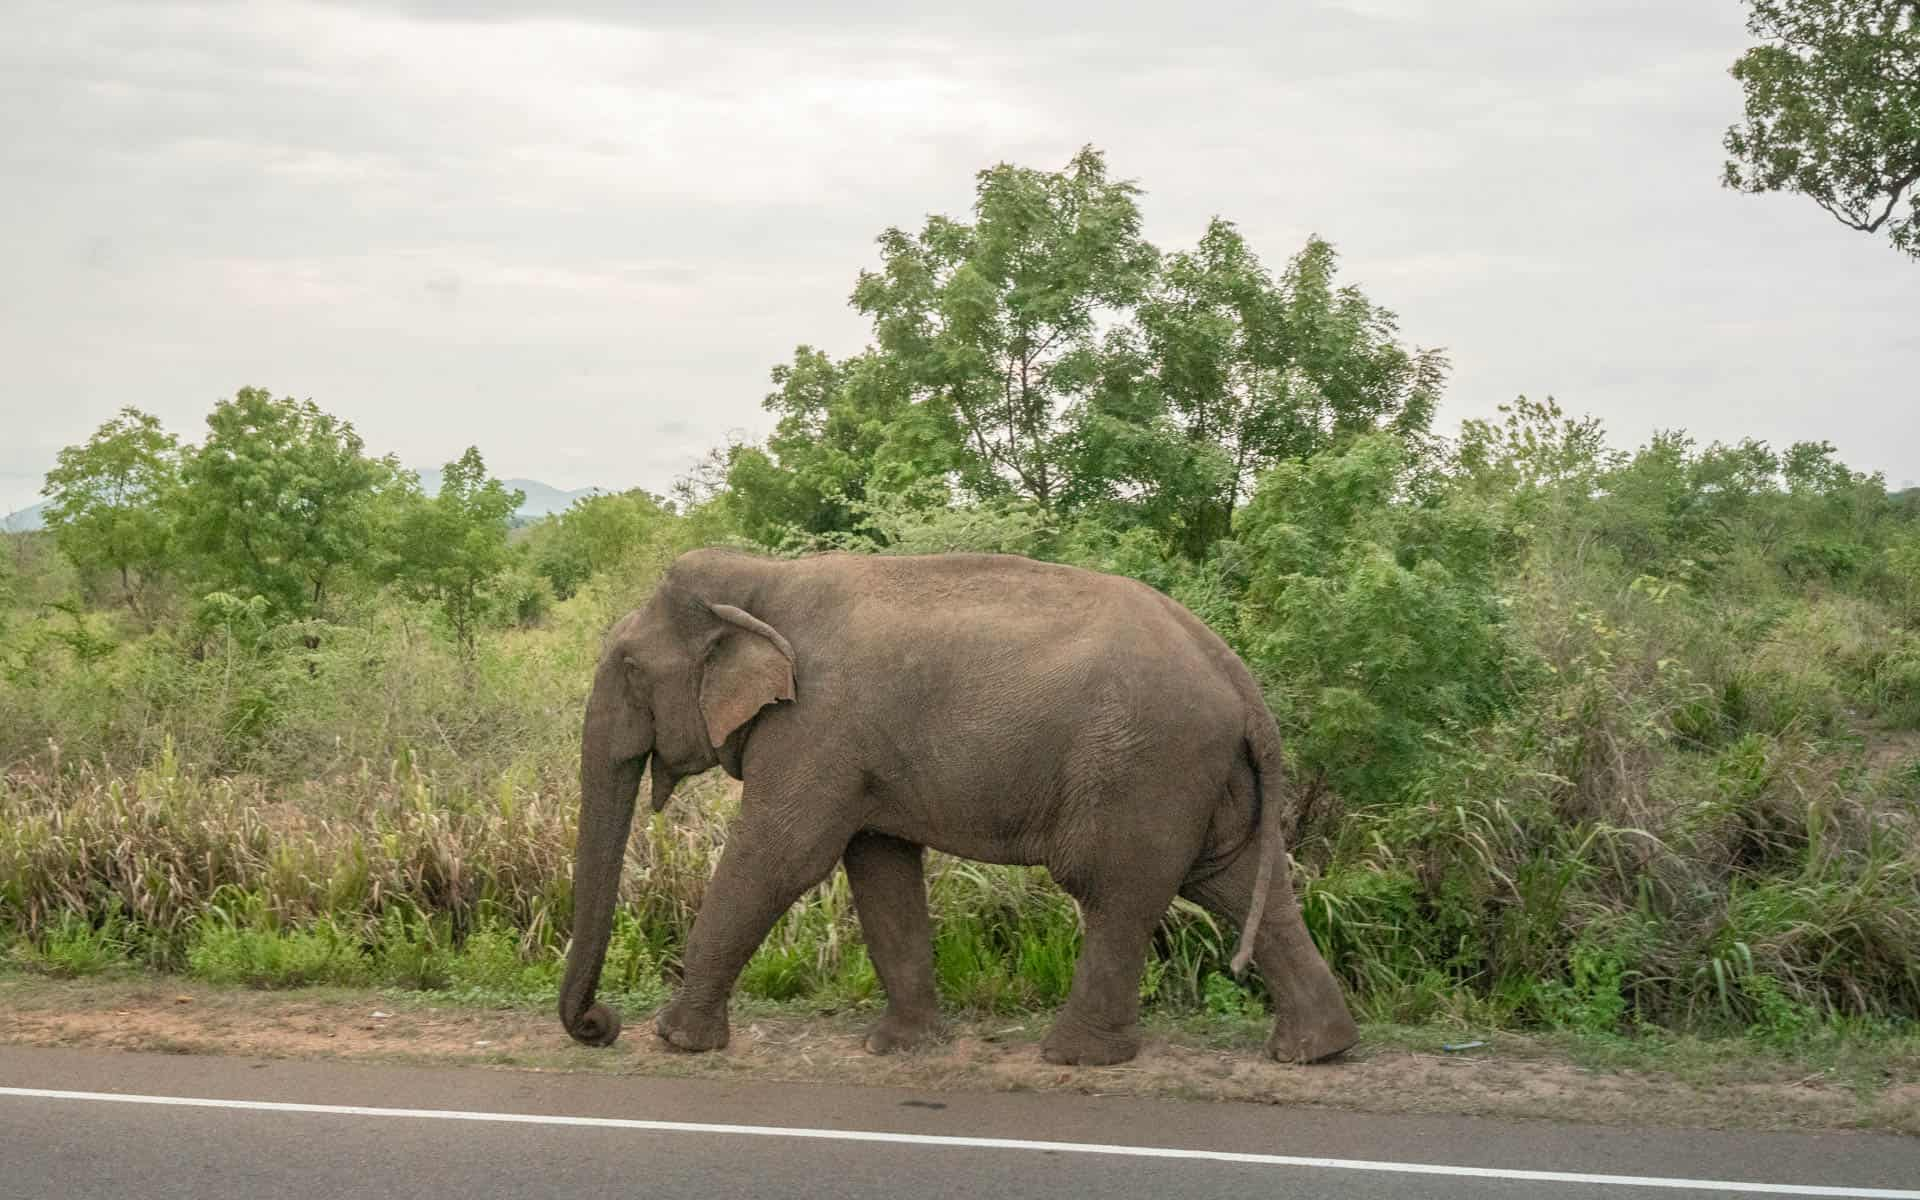 safari-sri-lanka-elephant-walking-road